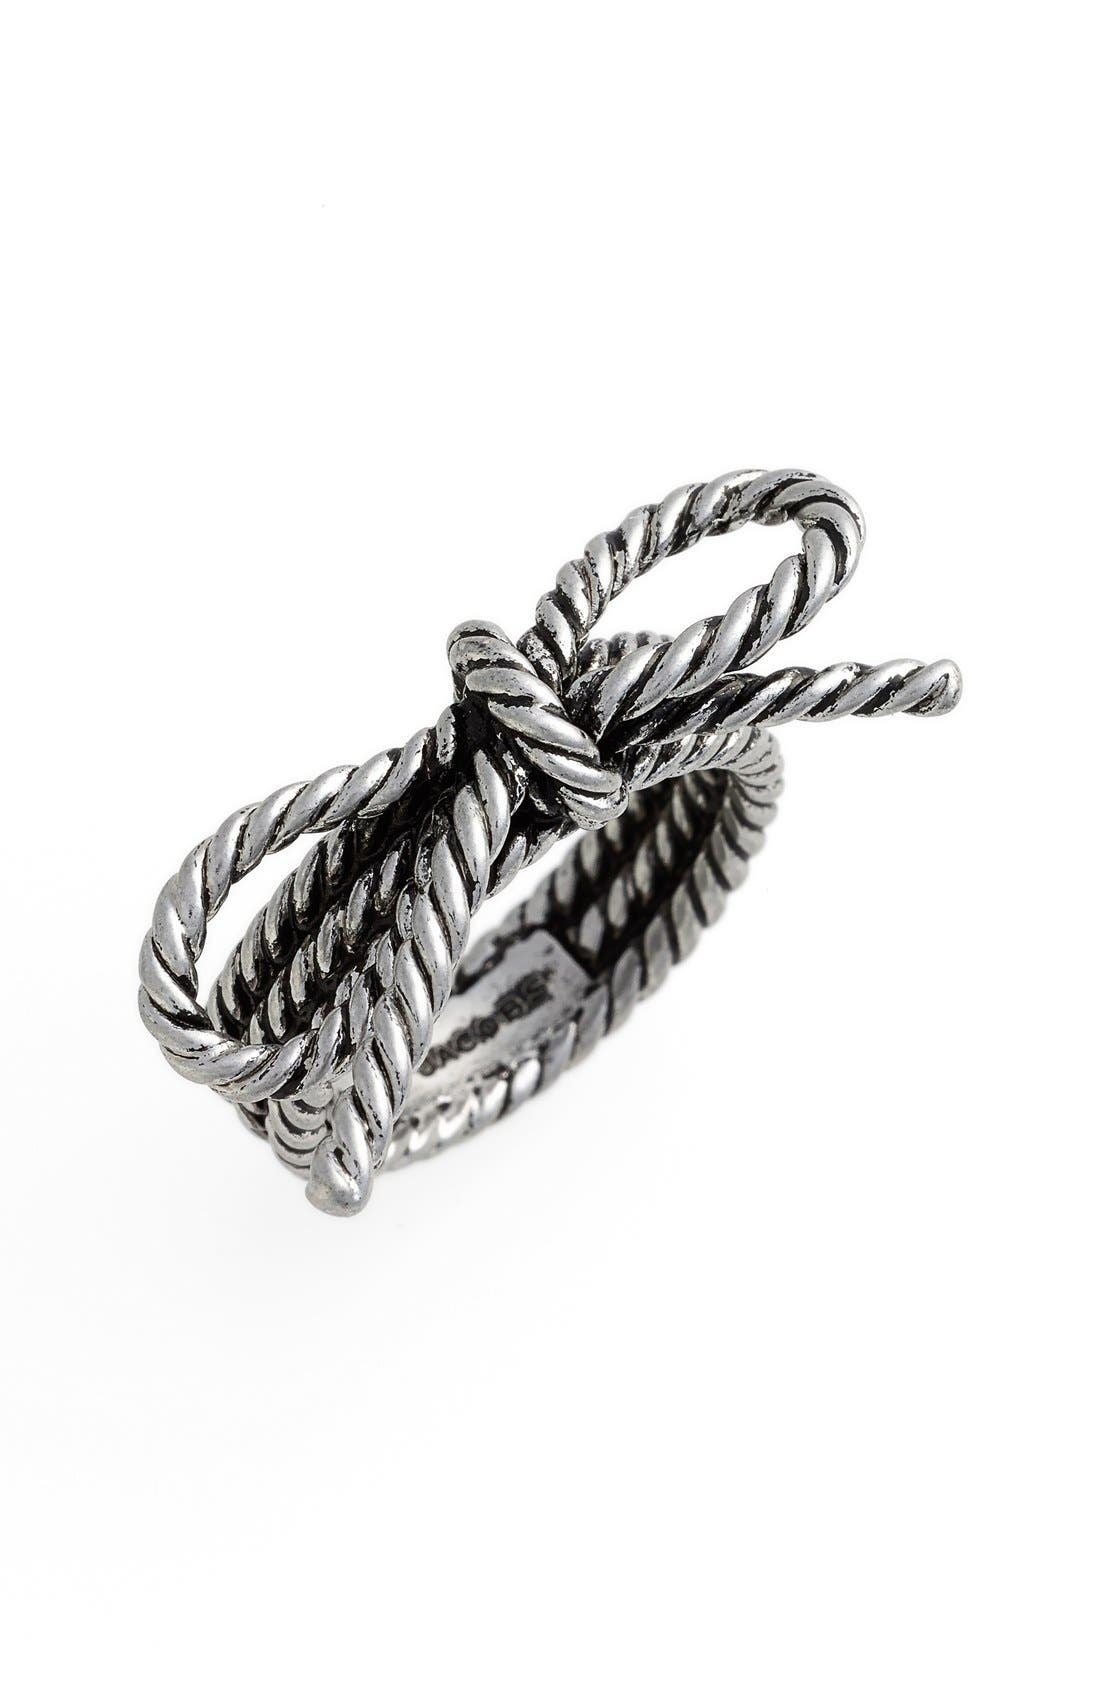 Main Image - MARC JACOBS Rope Bow Ring